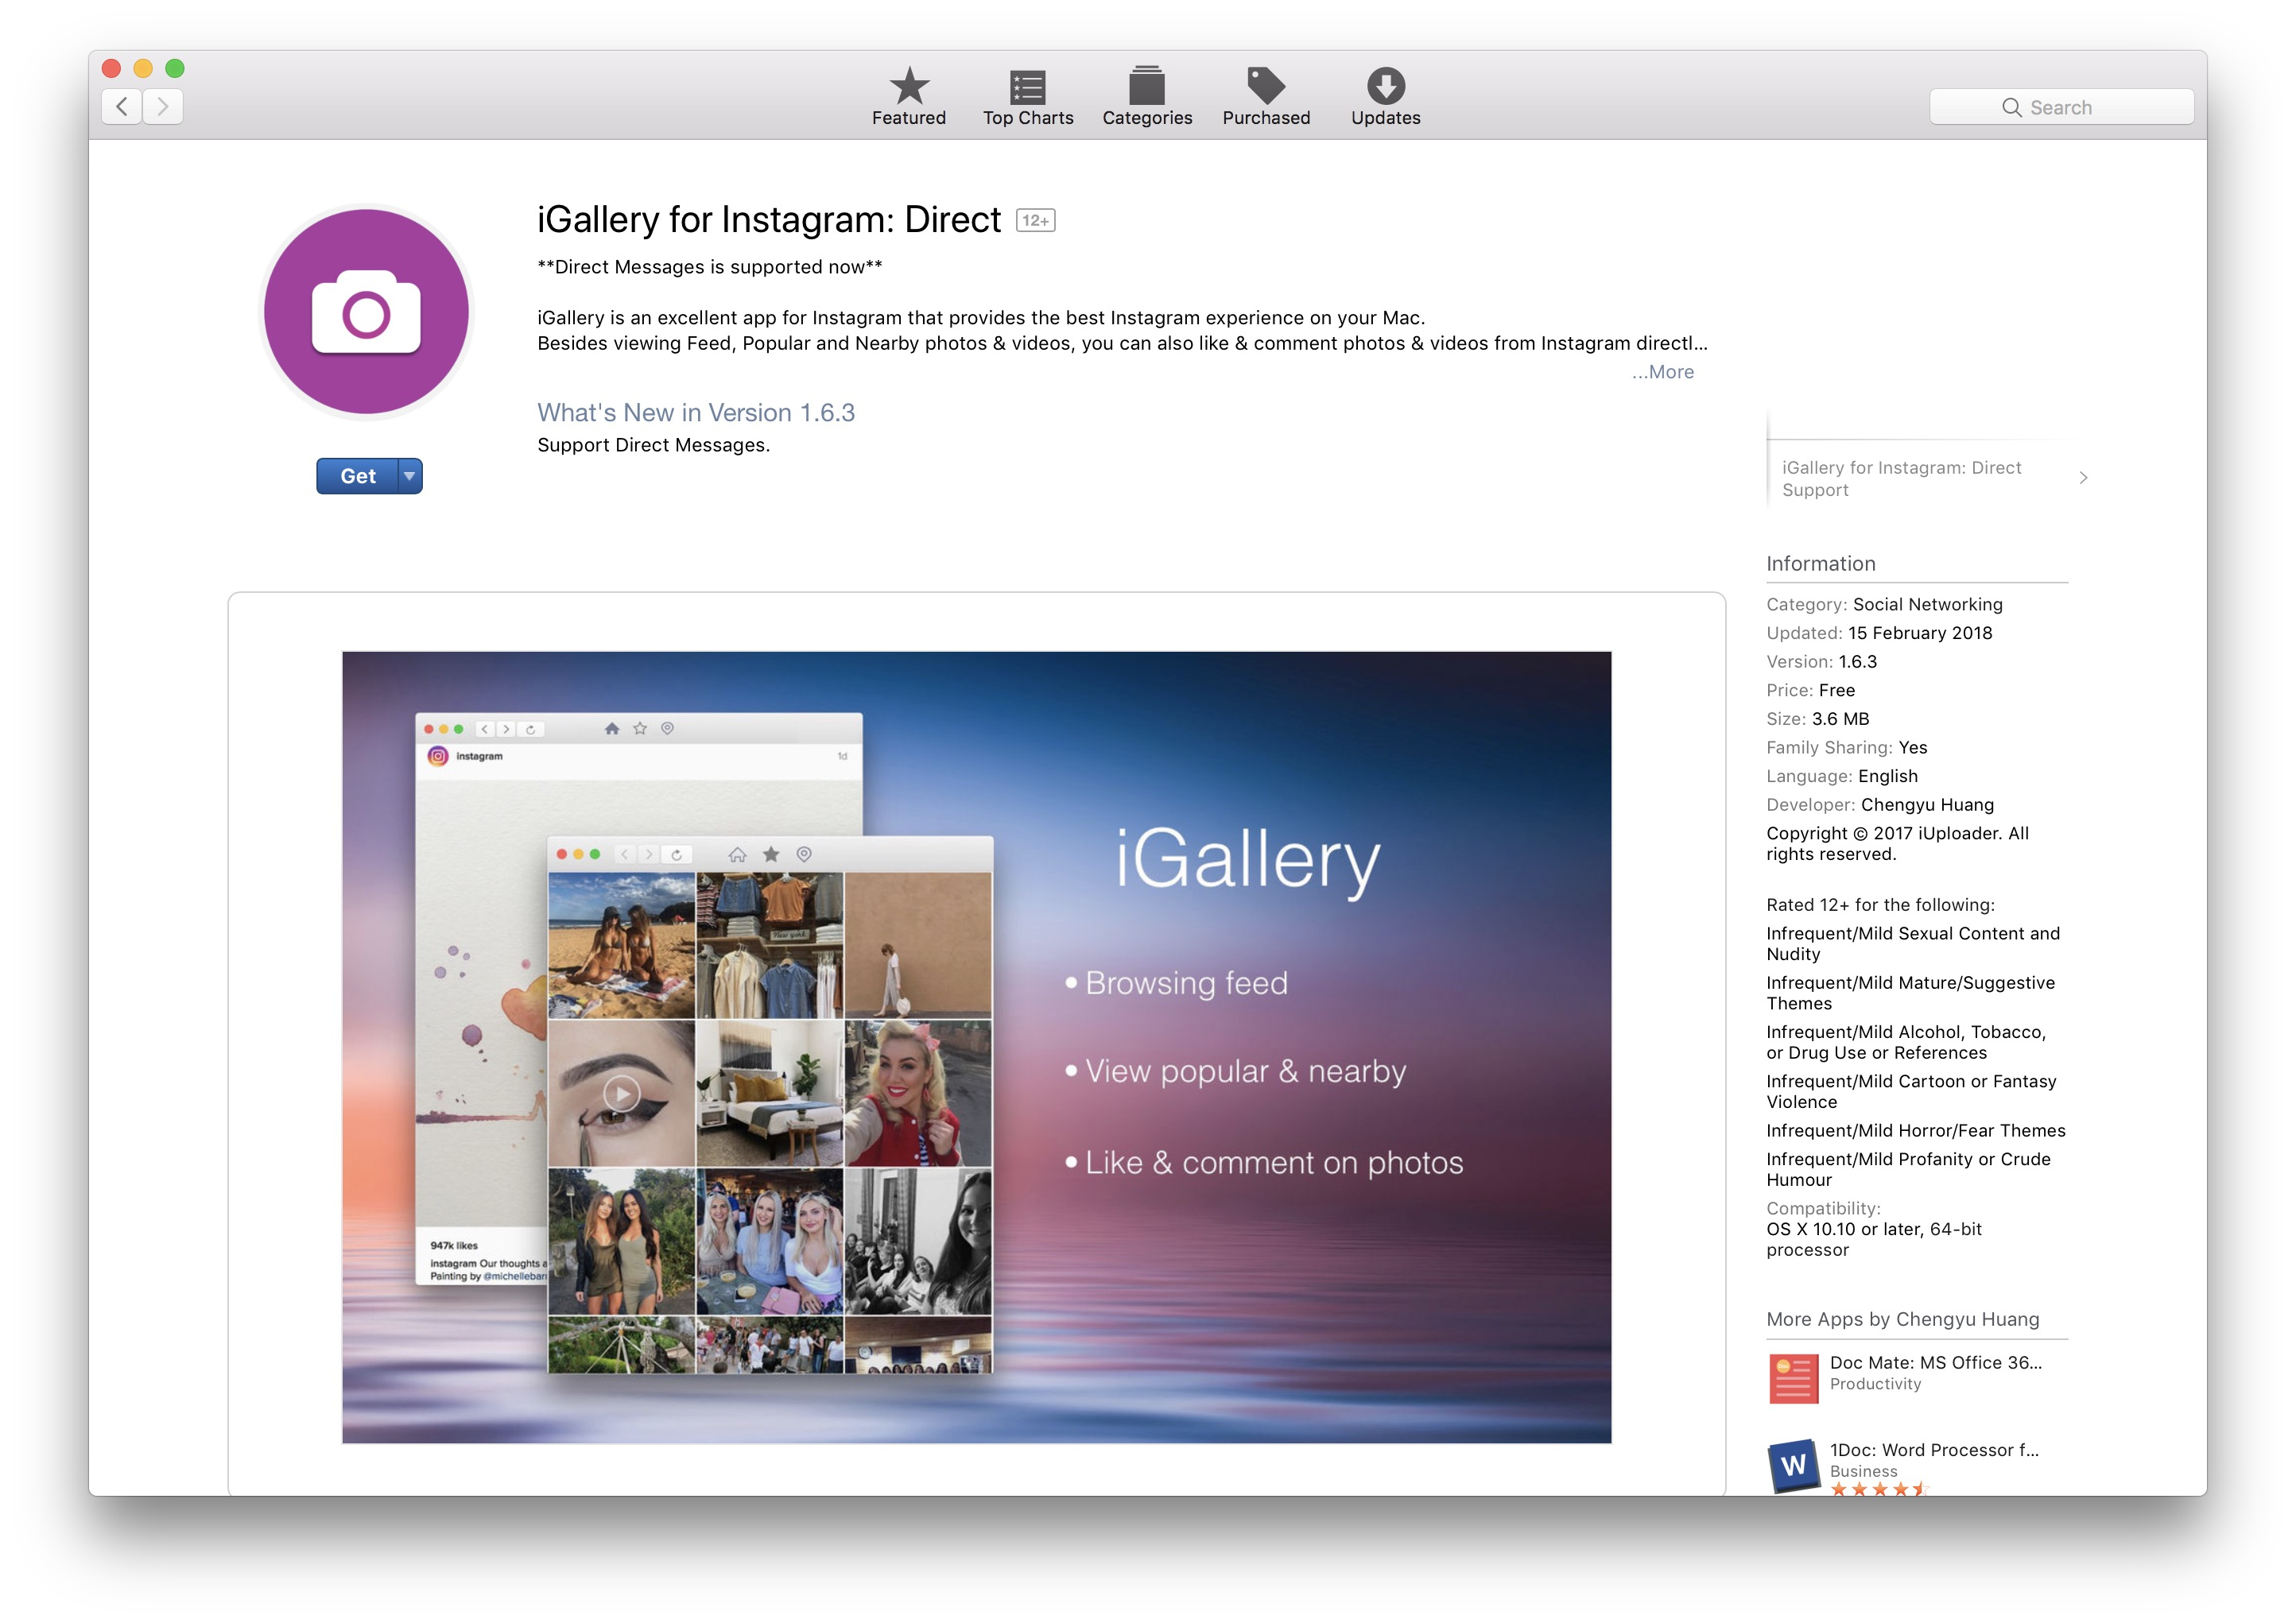 The Best Instagram Application for MacOS / Mac - iHowTo Tips - How